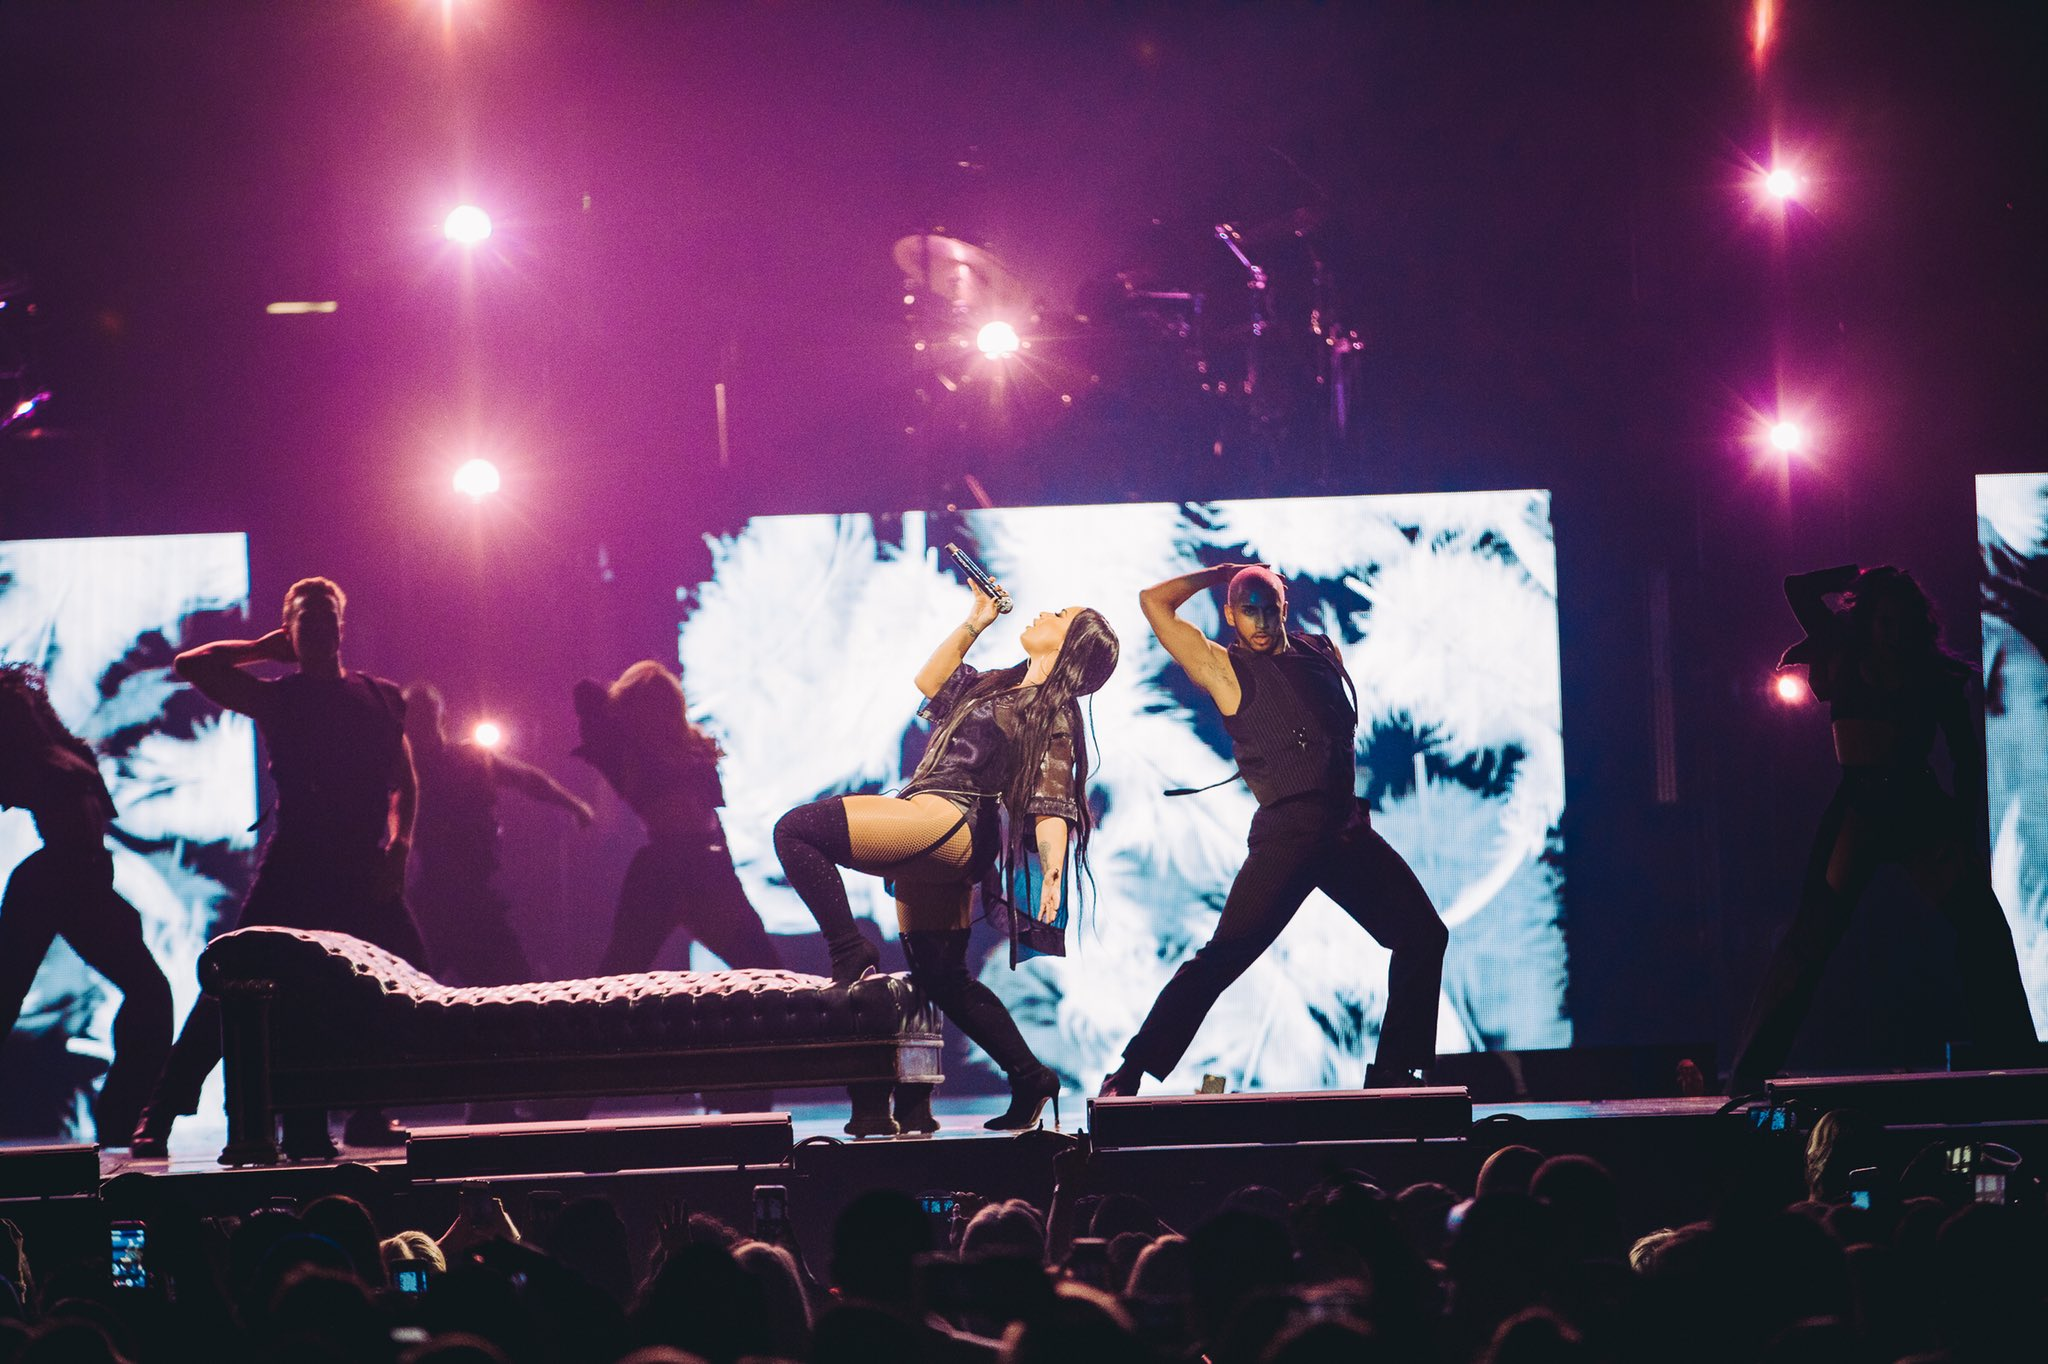 Love you Chicago!! You guys were incredible last night �� #tellmeyoulovemetour https://t.co/ZtVqNbAHRF